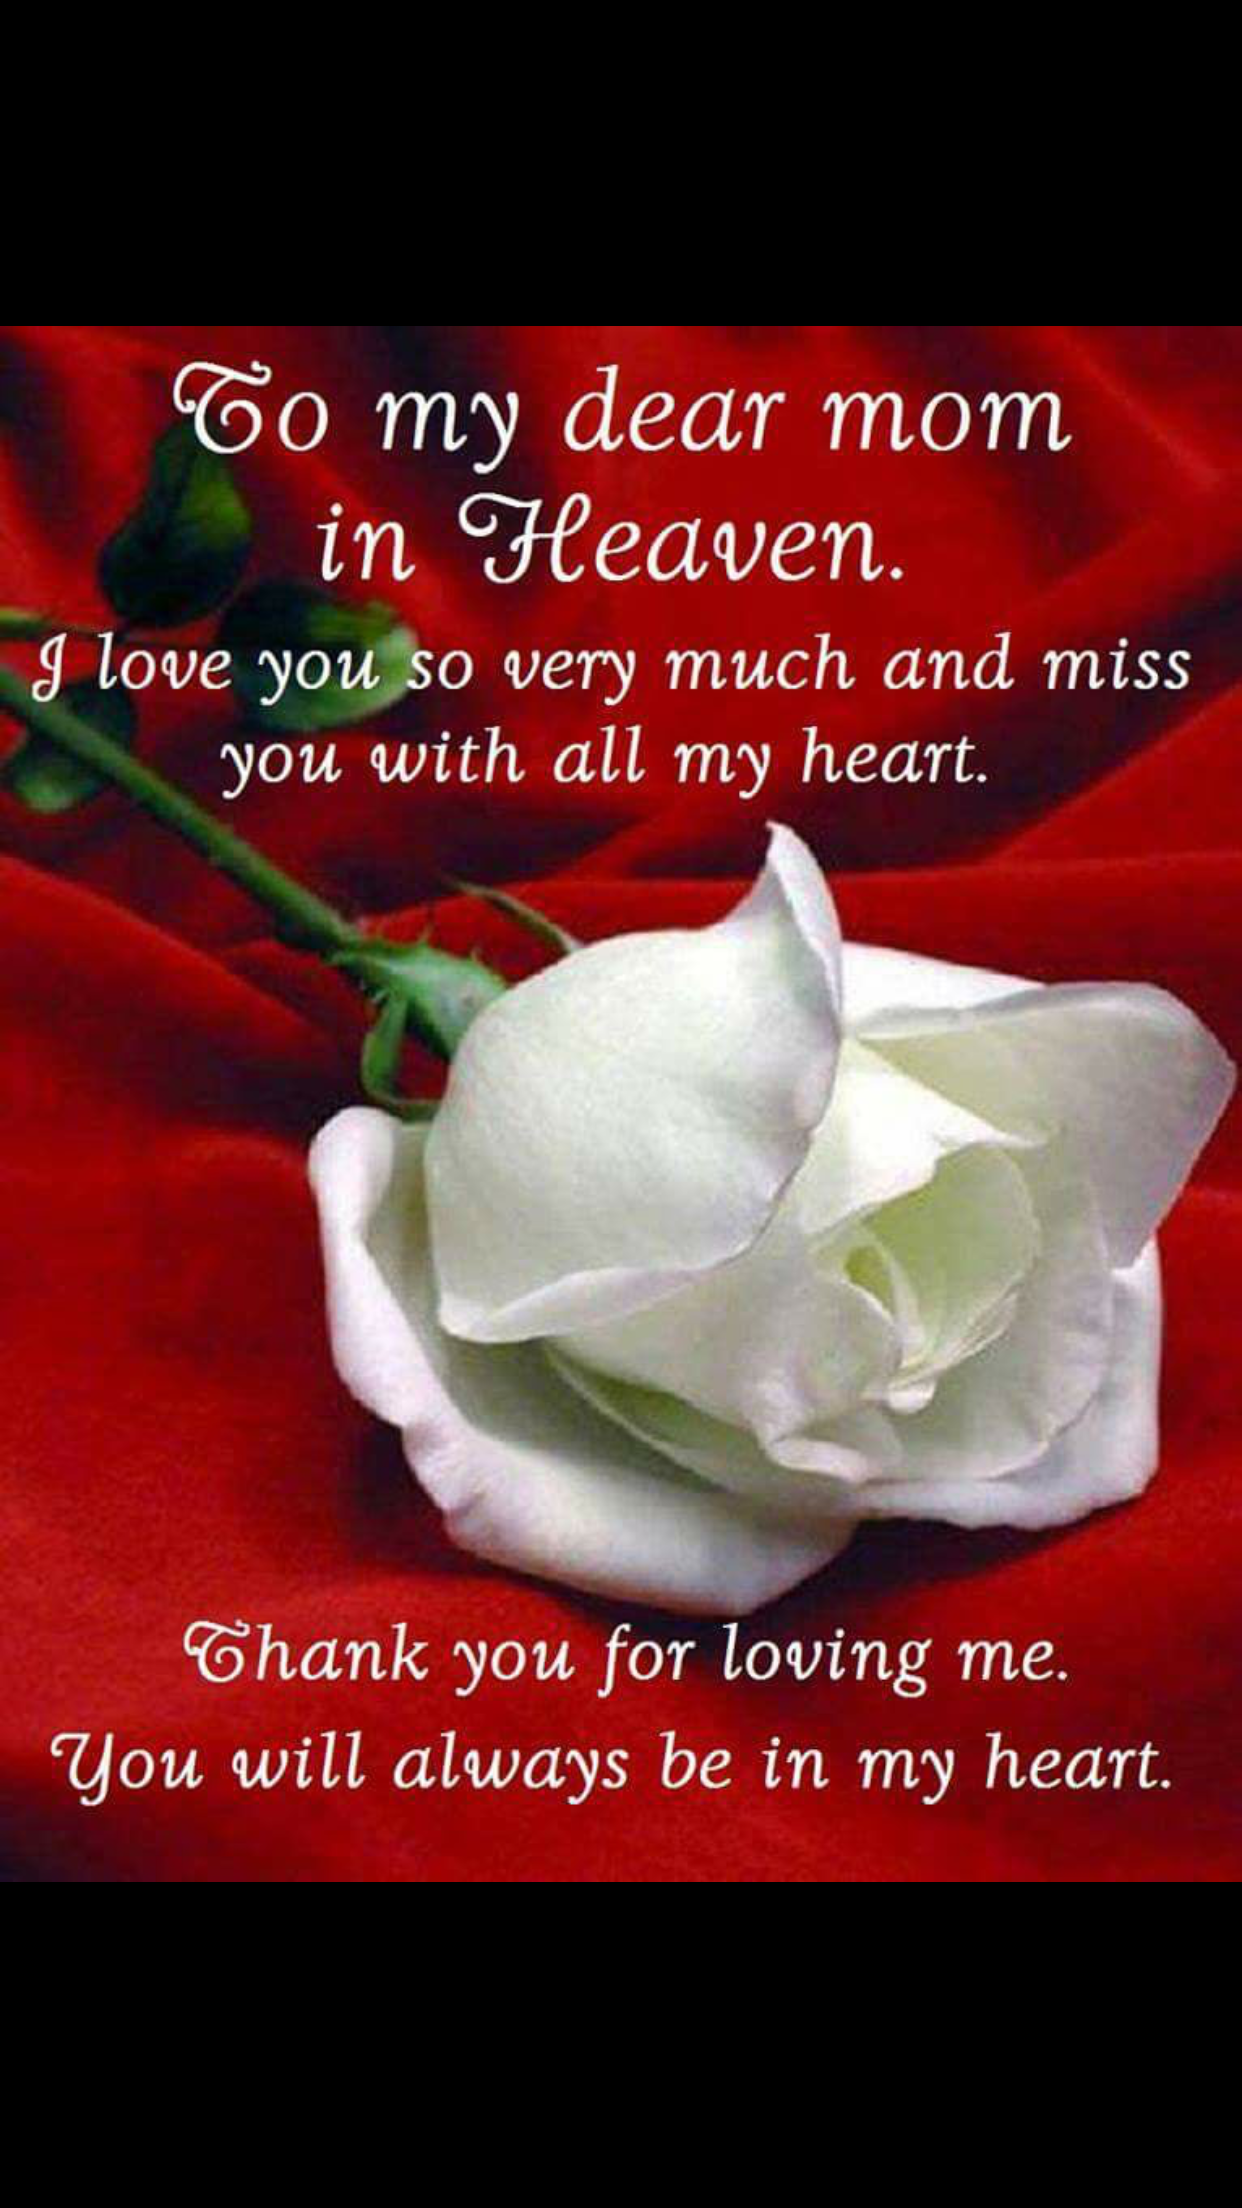 Missing My Mom In Heaven Quotes Endearing Grief  Quotes  Miss My Mom  Mom  Pinterest  Grief Dads And Poem Inspiration